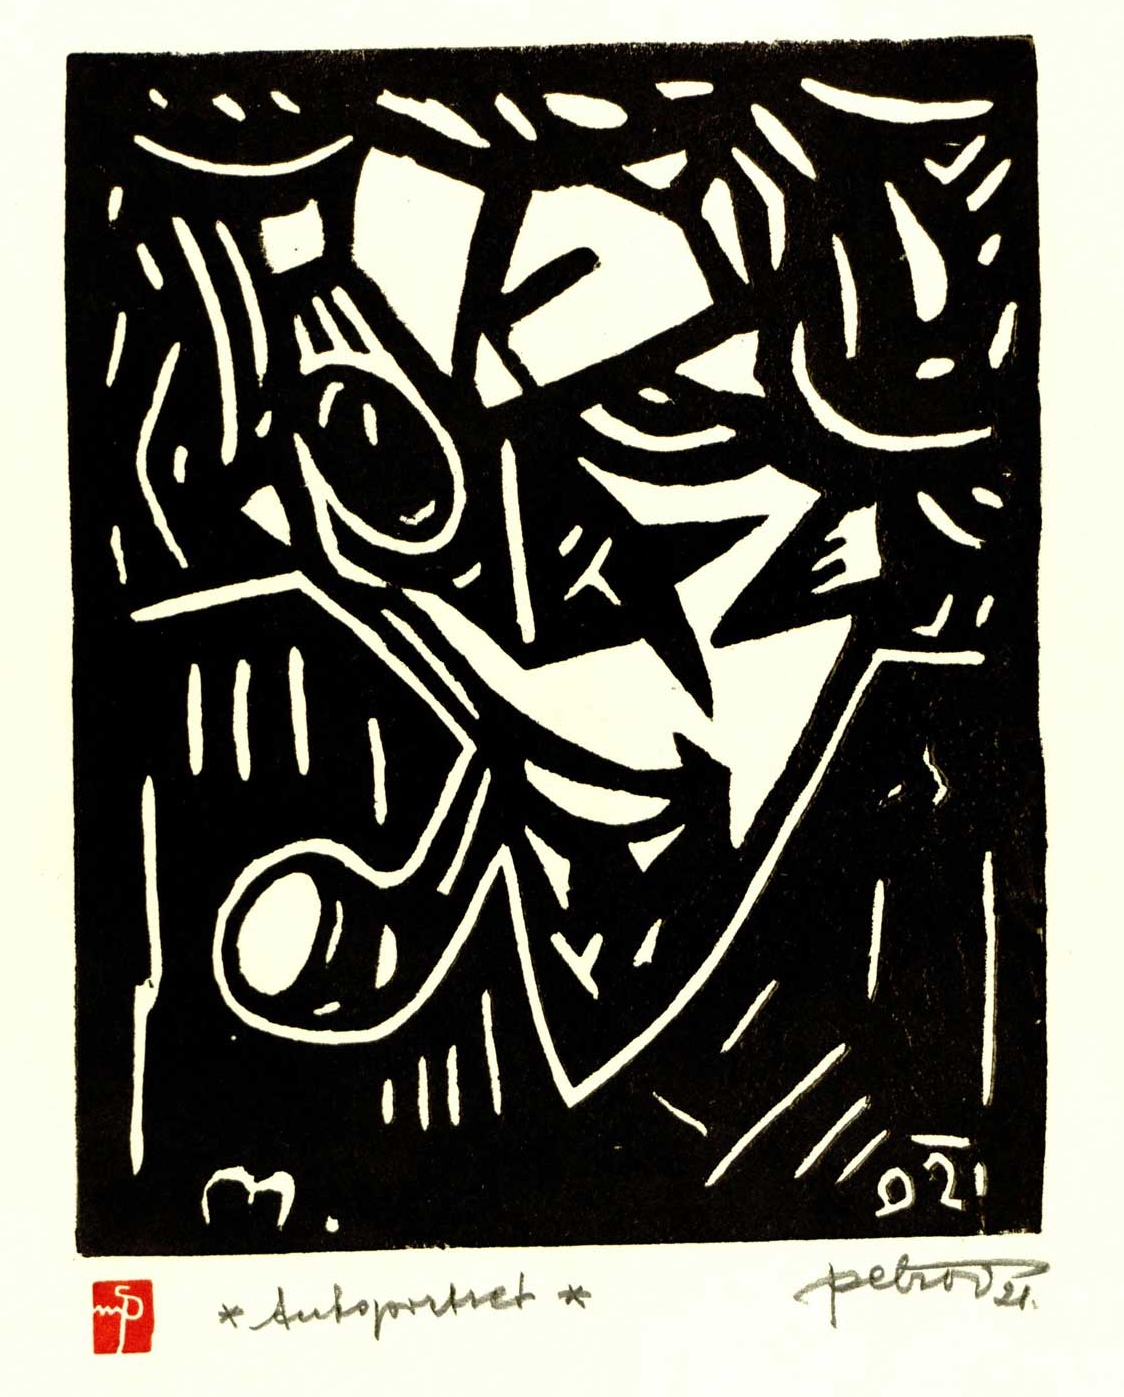 abstract self portrait by Michael S. Peter, Serbia 1921